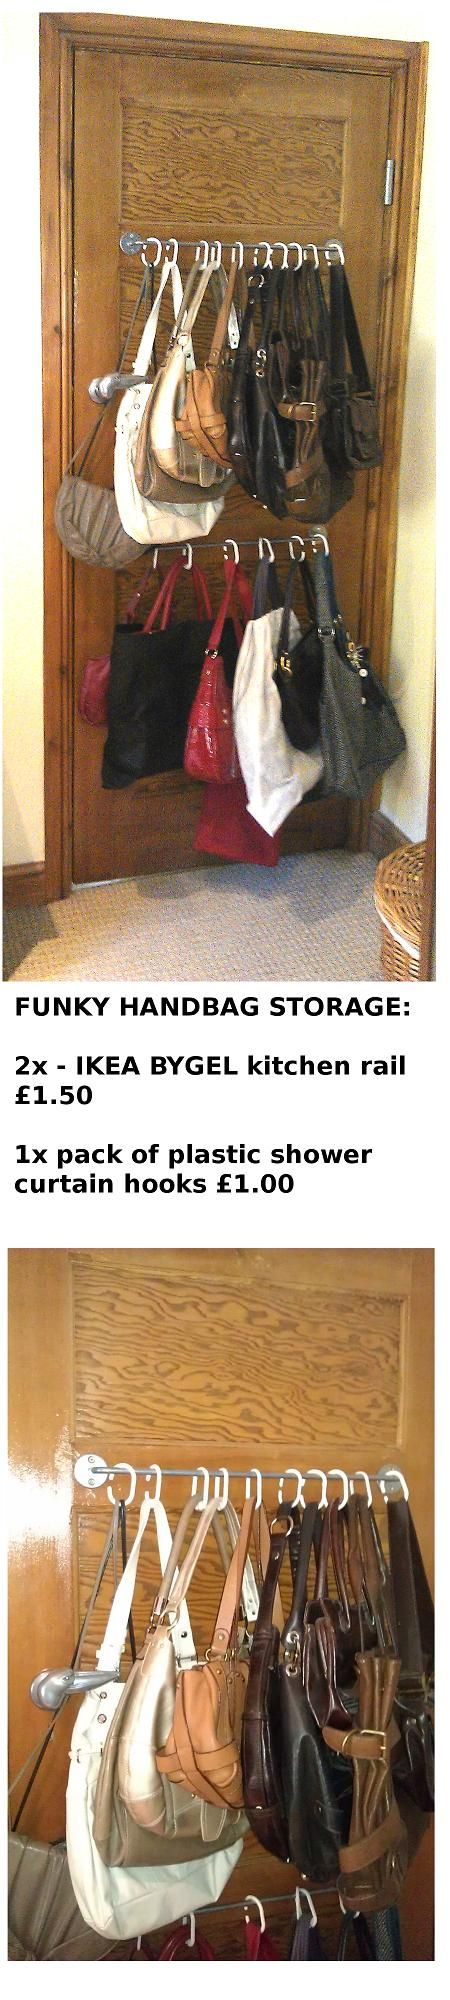 Funky Handbag Storage for Under £5